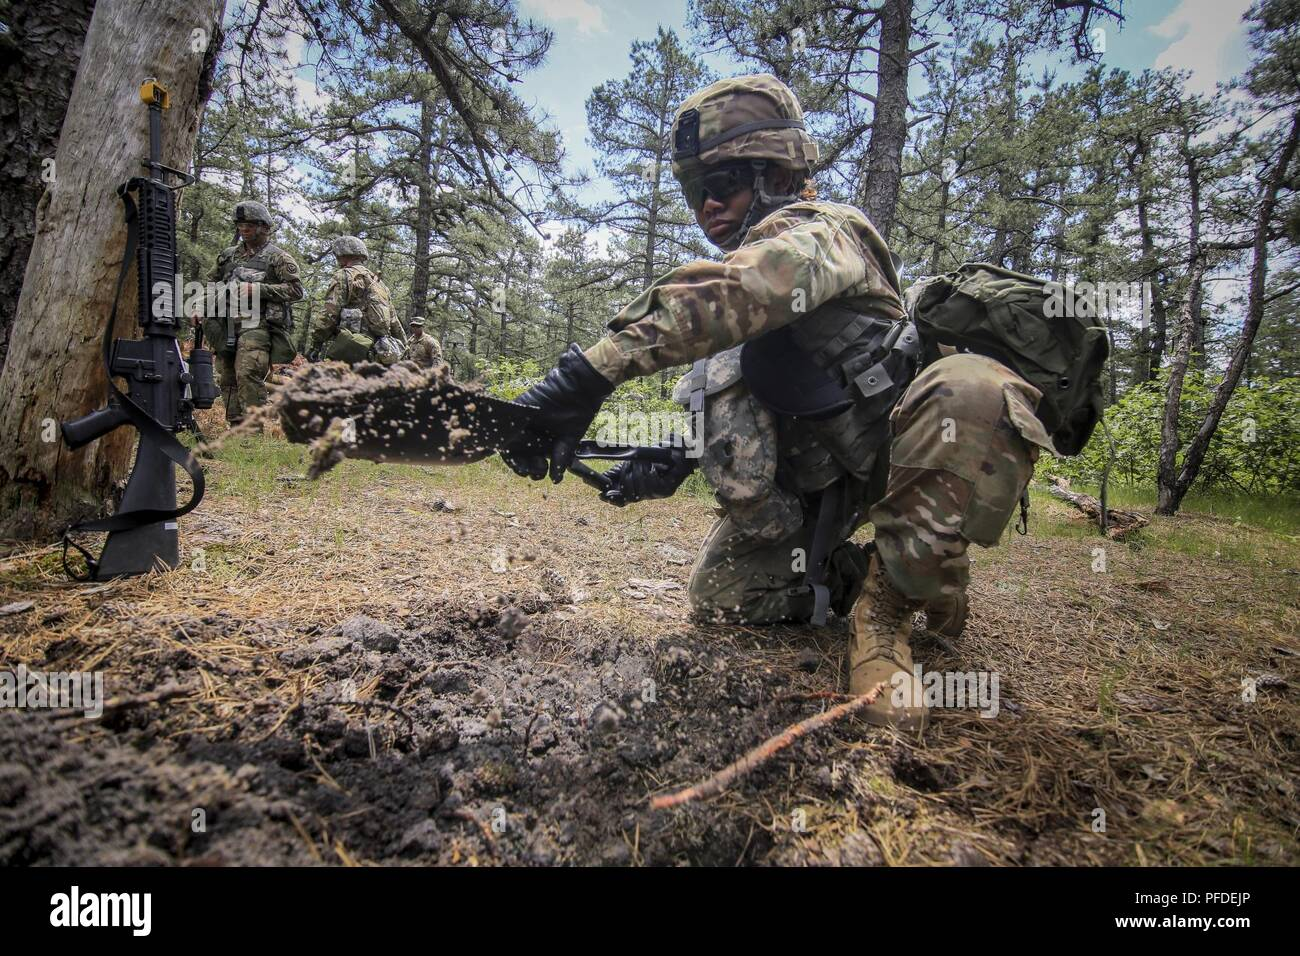 A U.S. Army National Guard Soldier from New Jersey's 250th Finance Detachment shovels out a hasty fighting position during training on Joint Base McGuire-Dix-Lakehurst, N.J., June 5, 2018. The 250th Finance Detachment was trained in base defense by instructors from the U.S. Army's 174th Infantry Brigade. - Stock Image